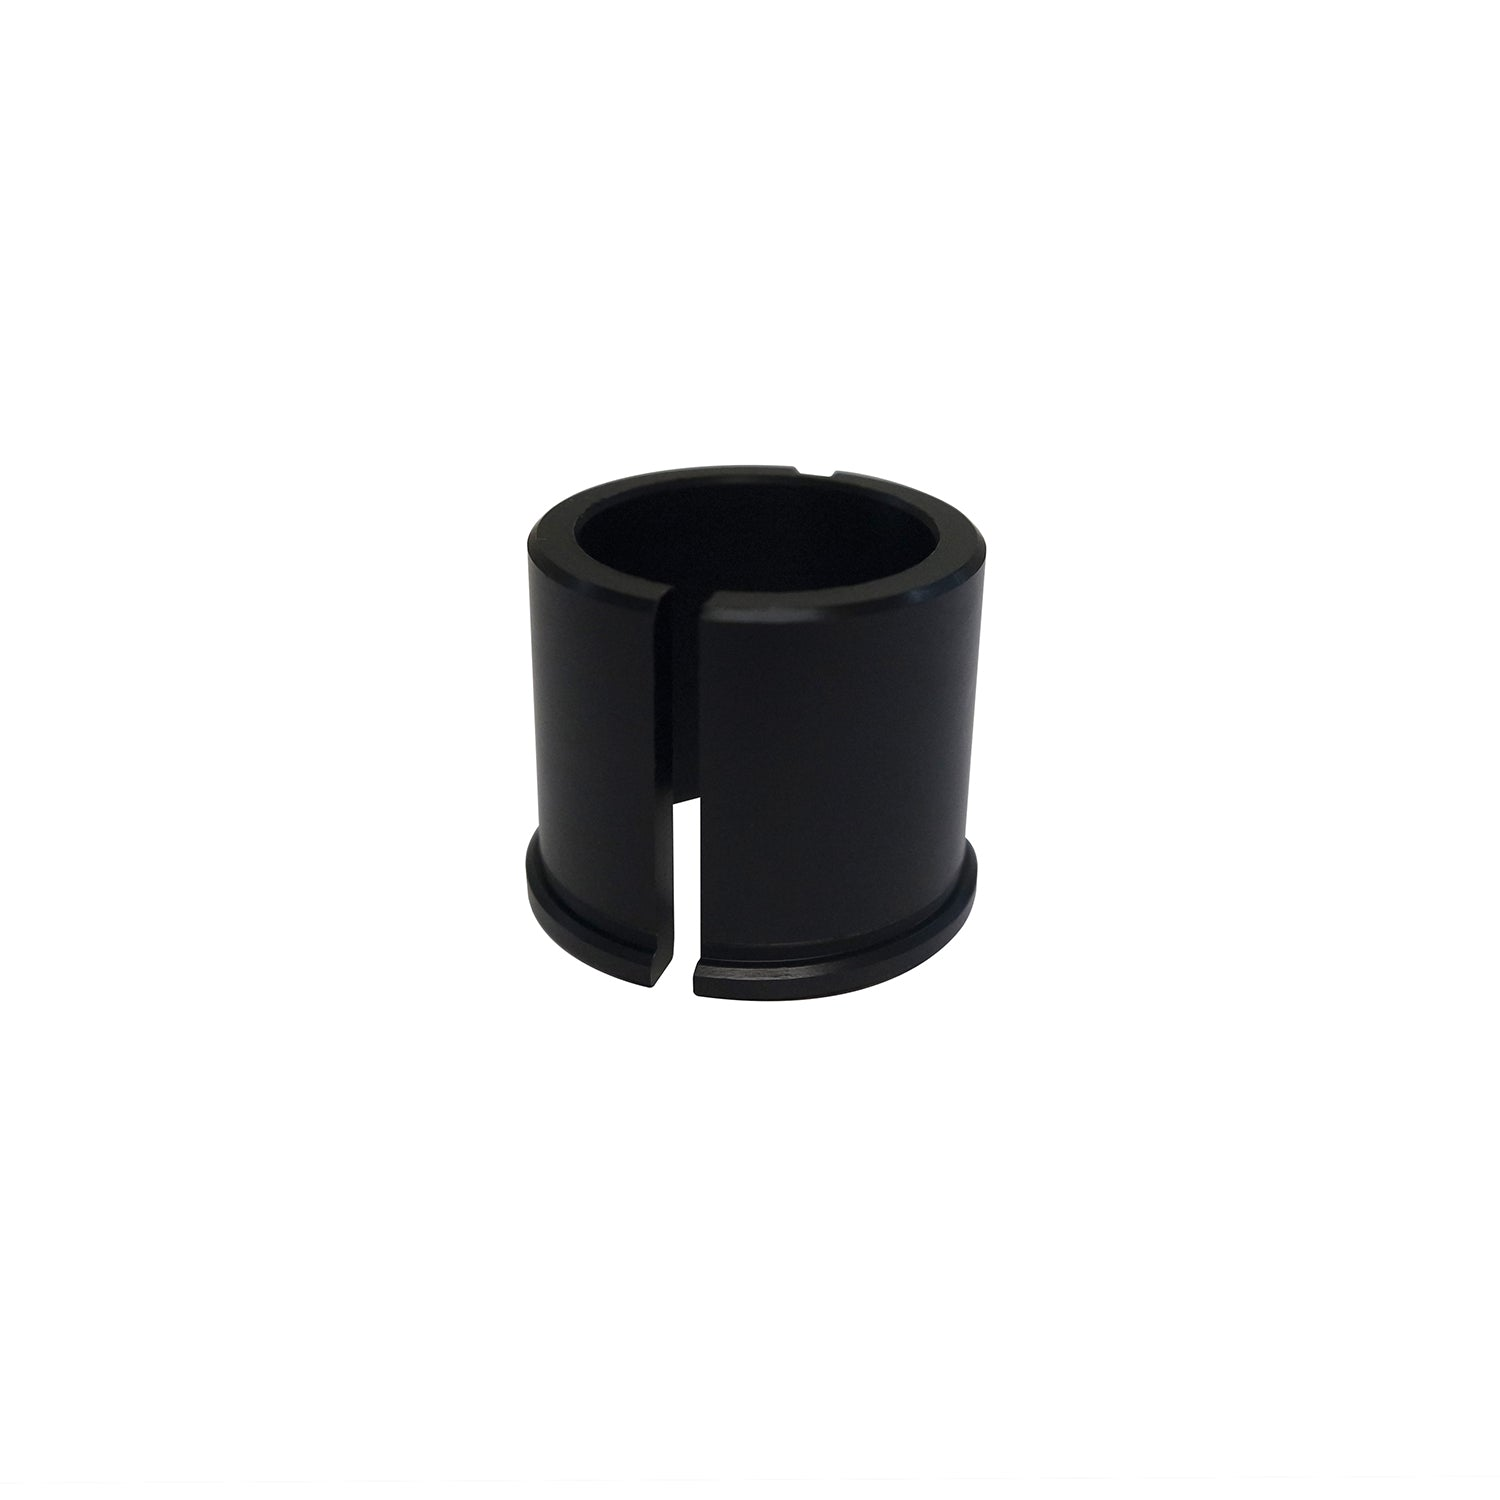 SECO Delrin 1 Inch Pole Claw Clamp Adapter -Adapters- eGPS Solutions Inc.